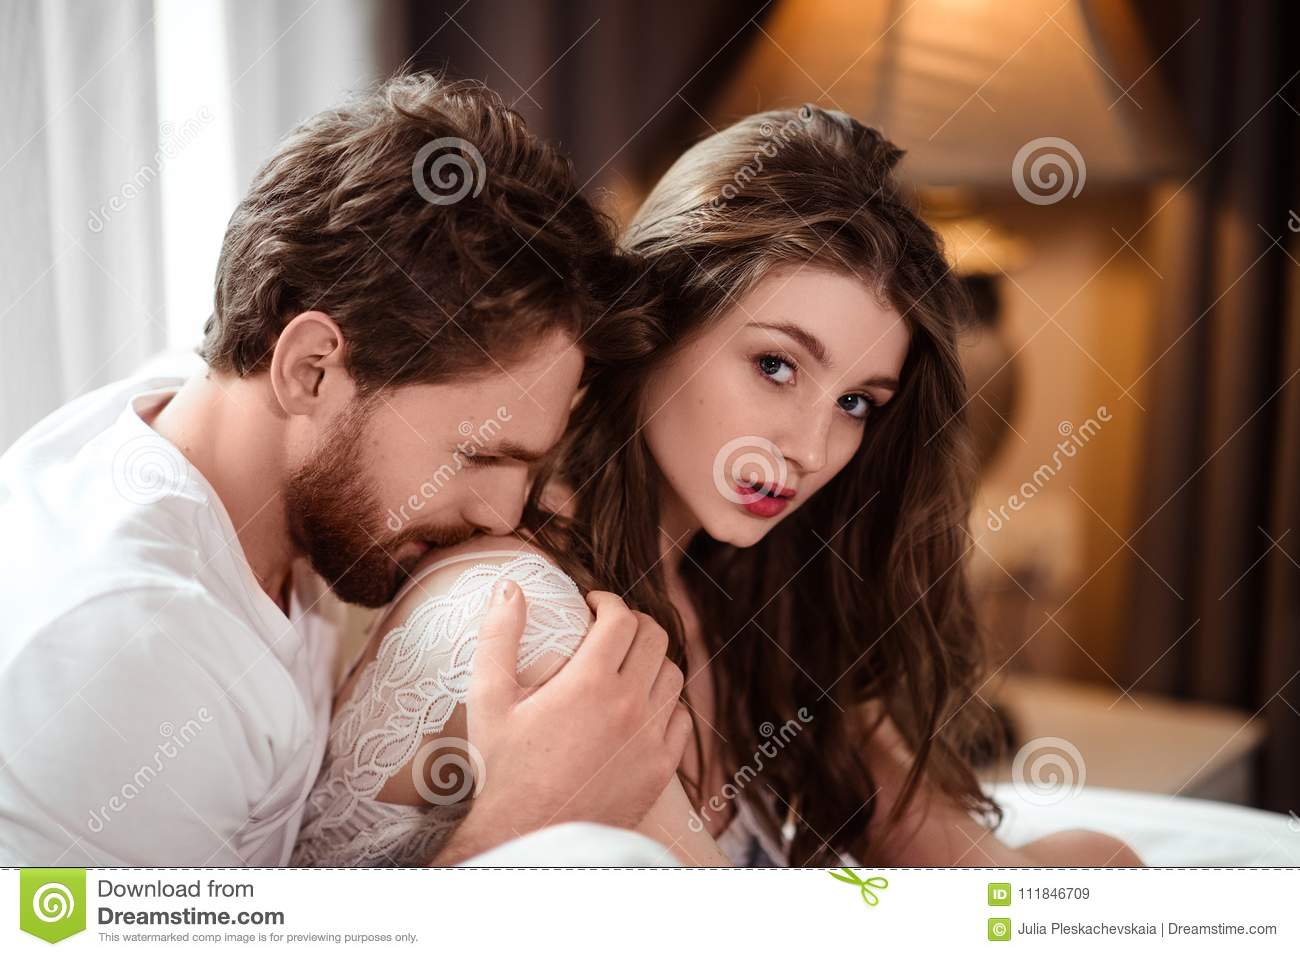 Horizontal shot of atrractive male kisses his female lover in shoulder, express love and passion, spend free time at